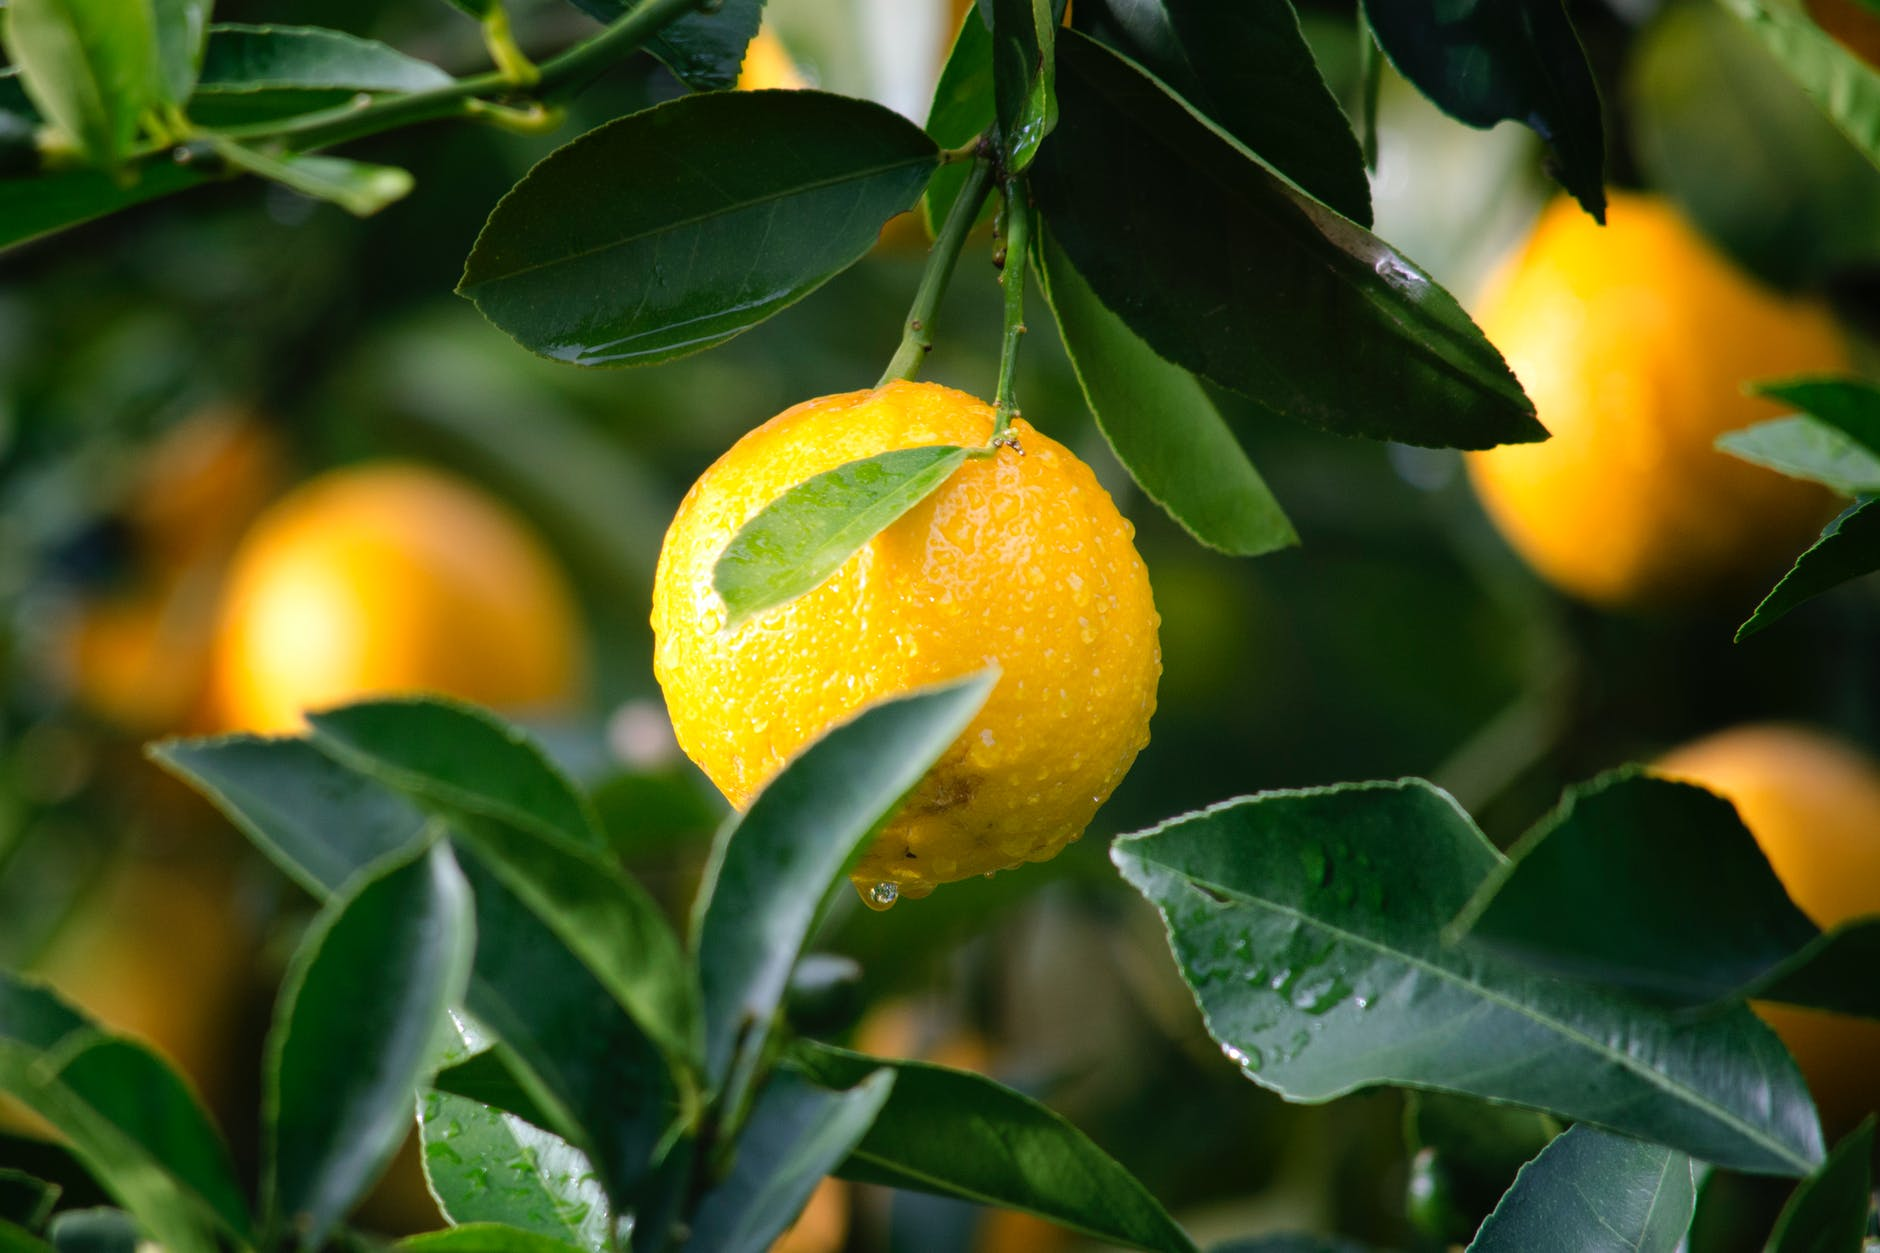 lemon fruit on a tree with green leaves around